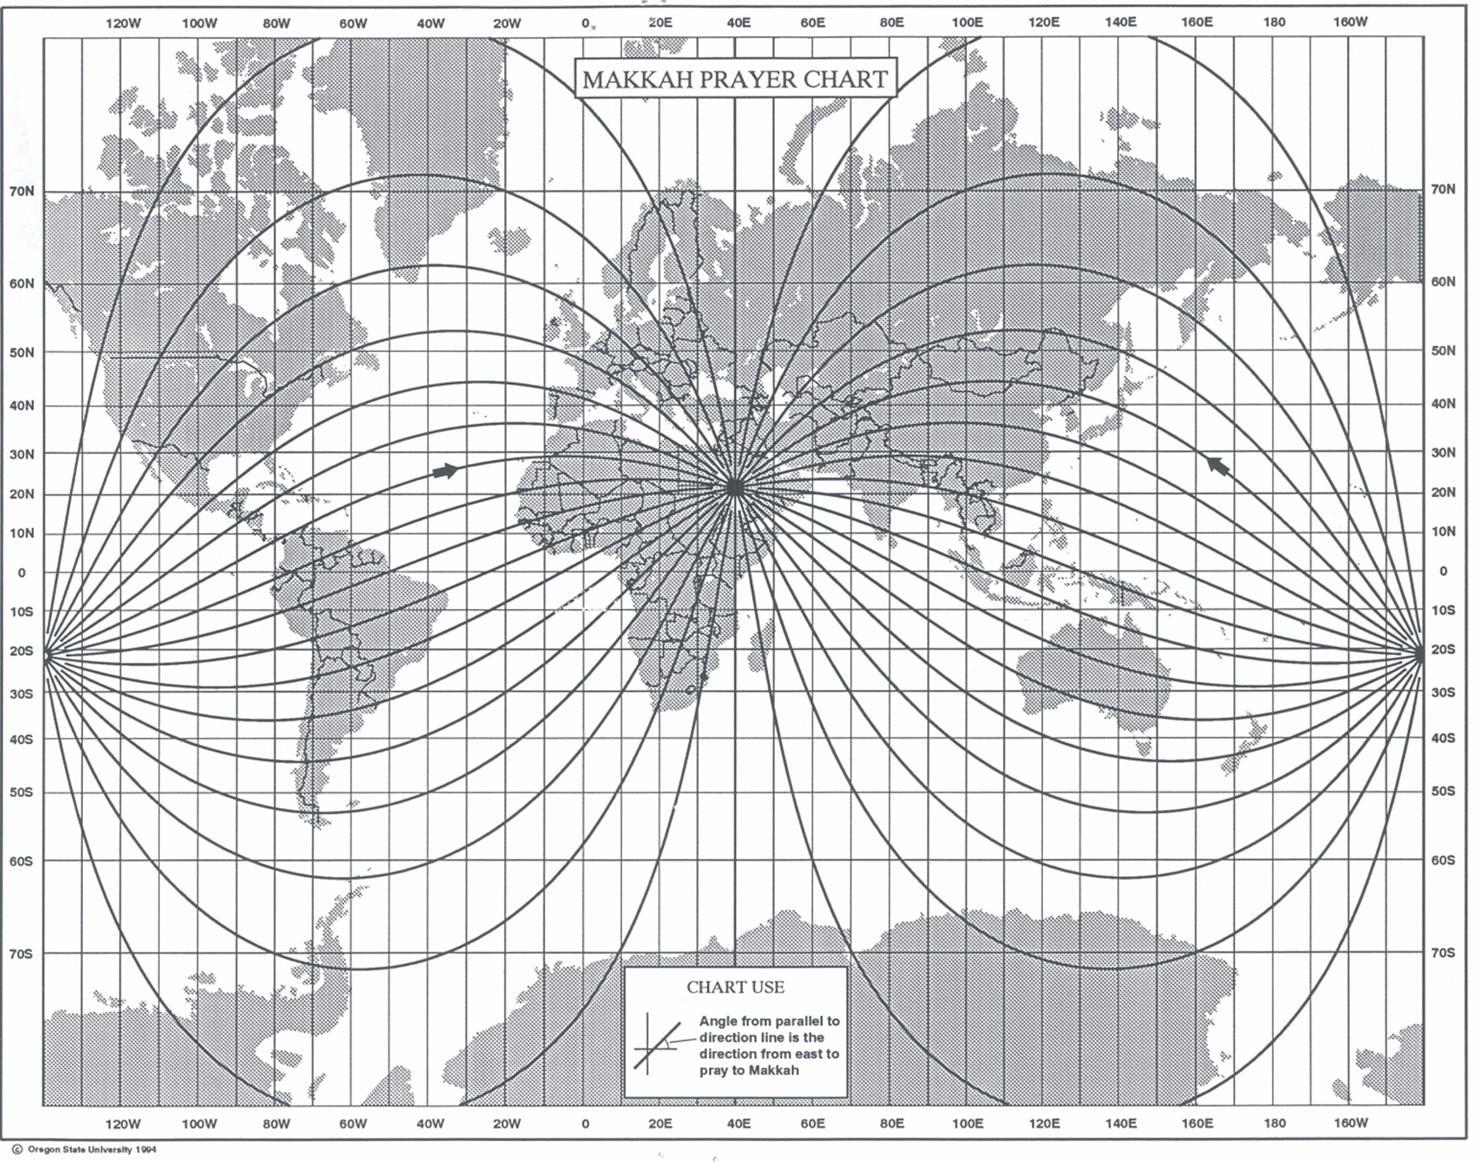 Map showing global qibla directions